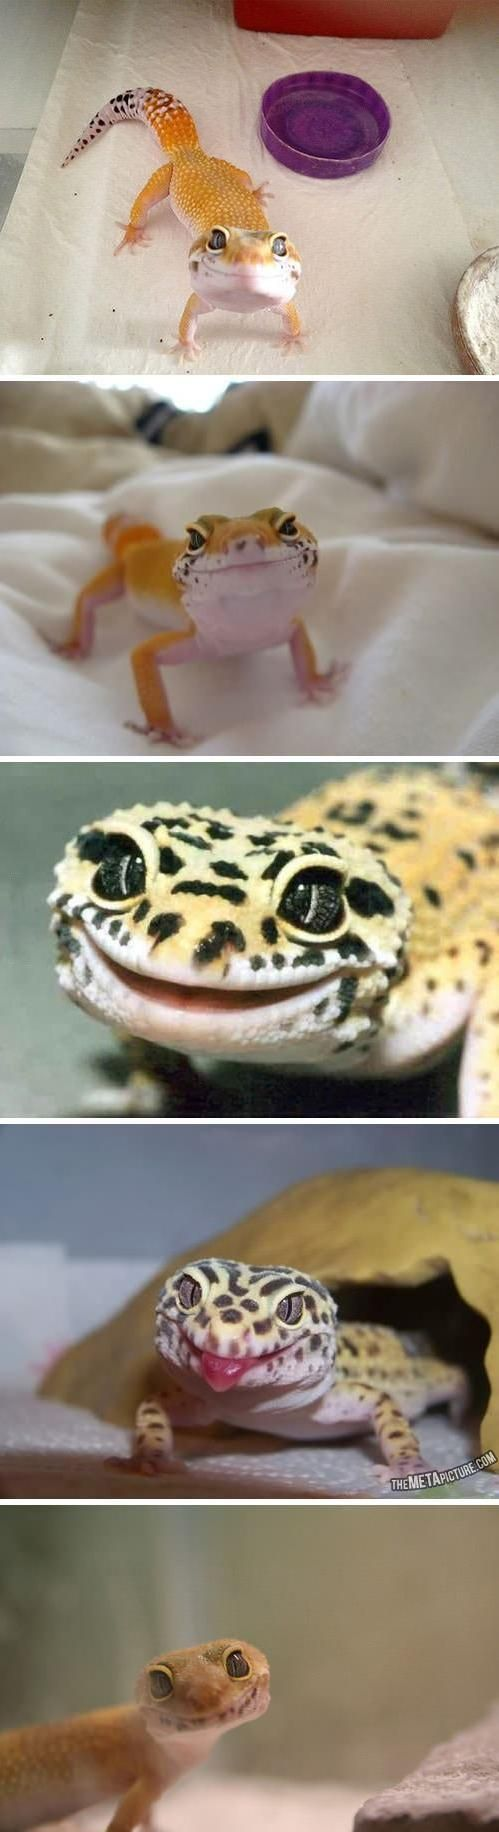 Ridiculously Photogenic Lizard. Aww! Makes me think of Leonard, who went to a new home today. :'(